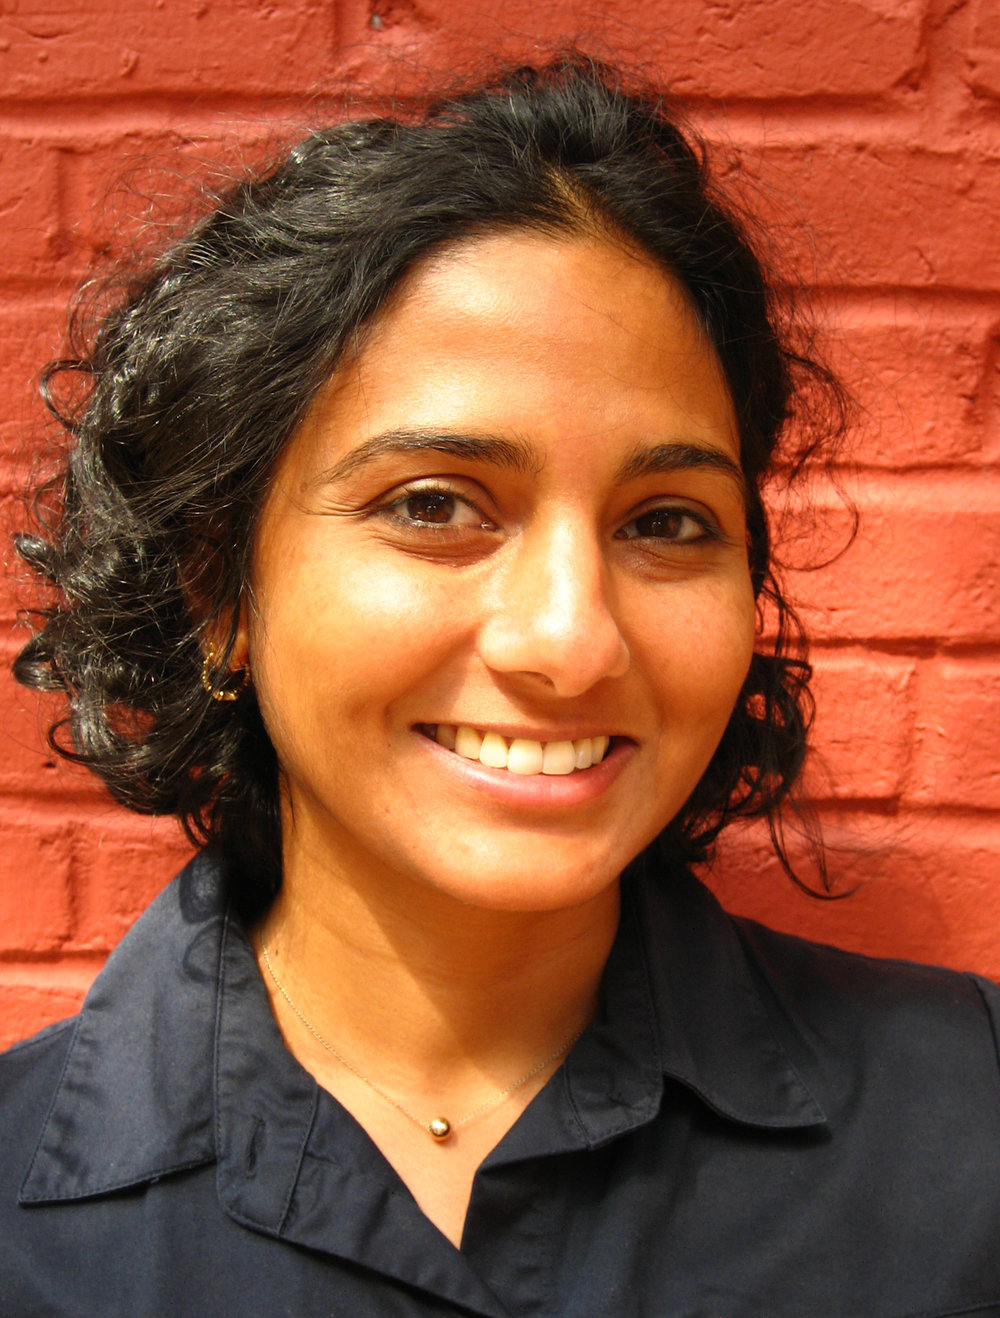 Meera Shah   Meera Shah joined Palestine Legal in 2019. She supports the organization's casework and public education and oversees the advocacy work on free speech, academic freedom, and the right to boycott. Meera has devoted her career to advancing human rights and social justice for marginalized communities. Before joining Palestine Legal, Meera was a Senior Legal Advisor at the Center for Reproductive Rights, where she helped launch a program to ensure the sexual and reproductive rights of women and girls affected by conflict.